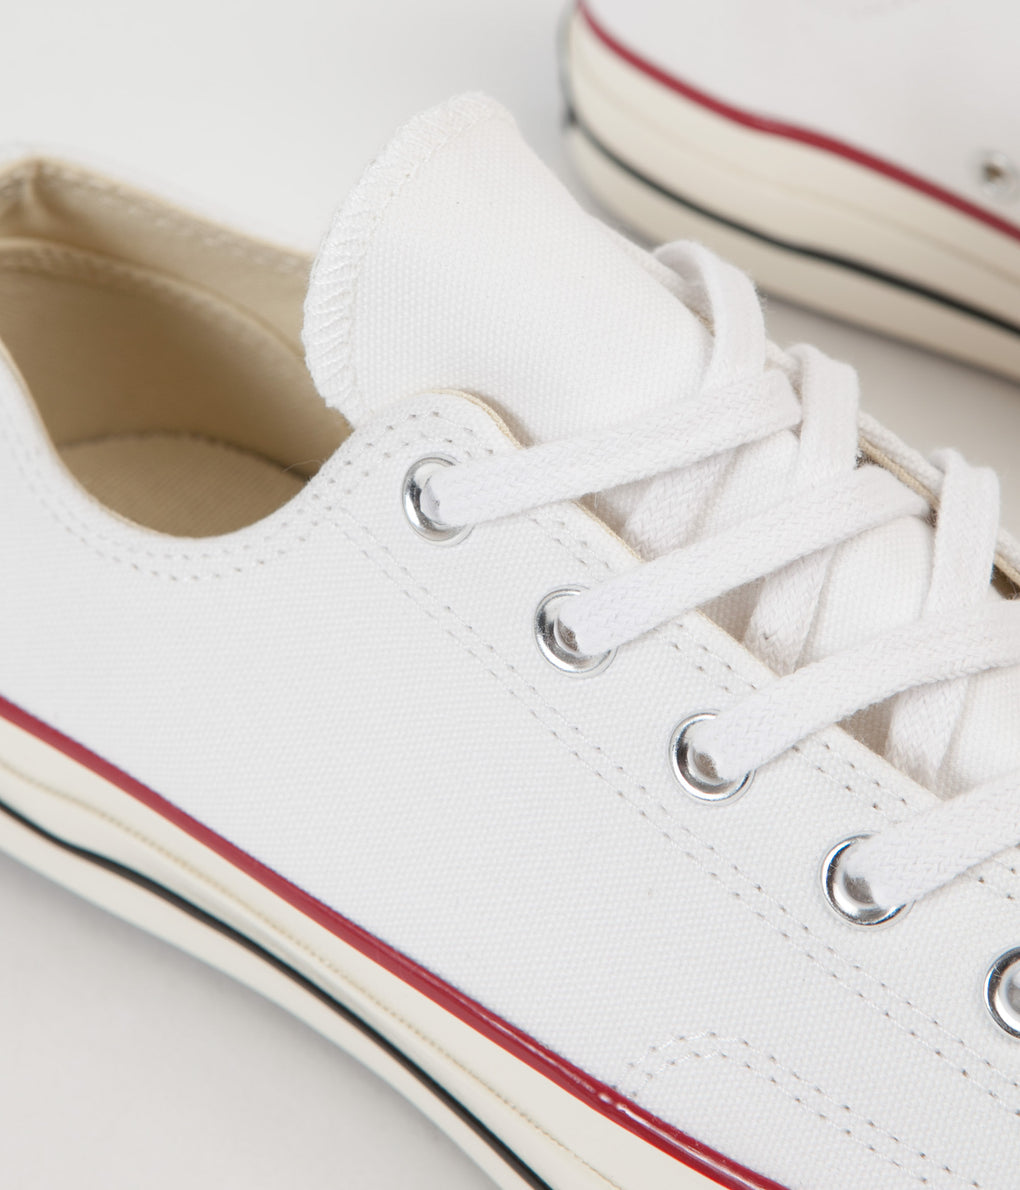 Converse CTAS 70's Ox Shoes - White / Red / Black